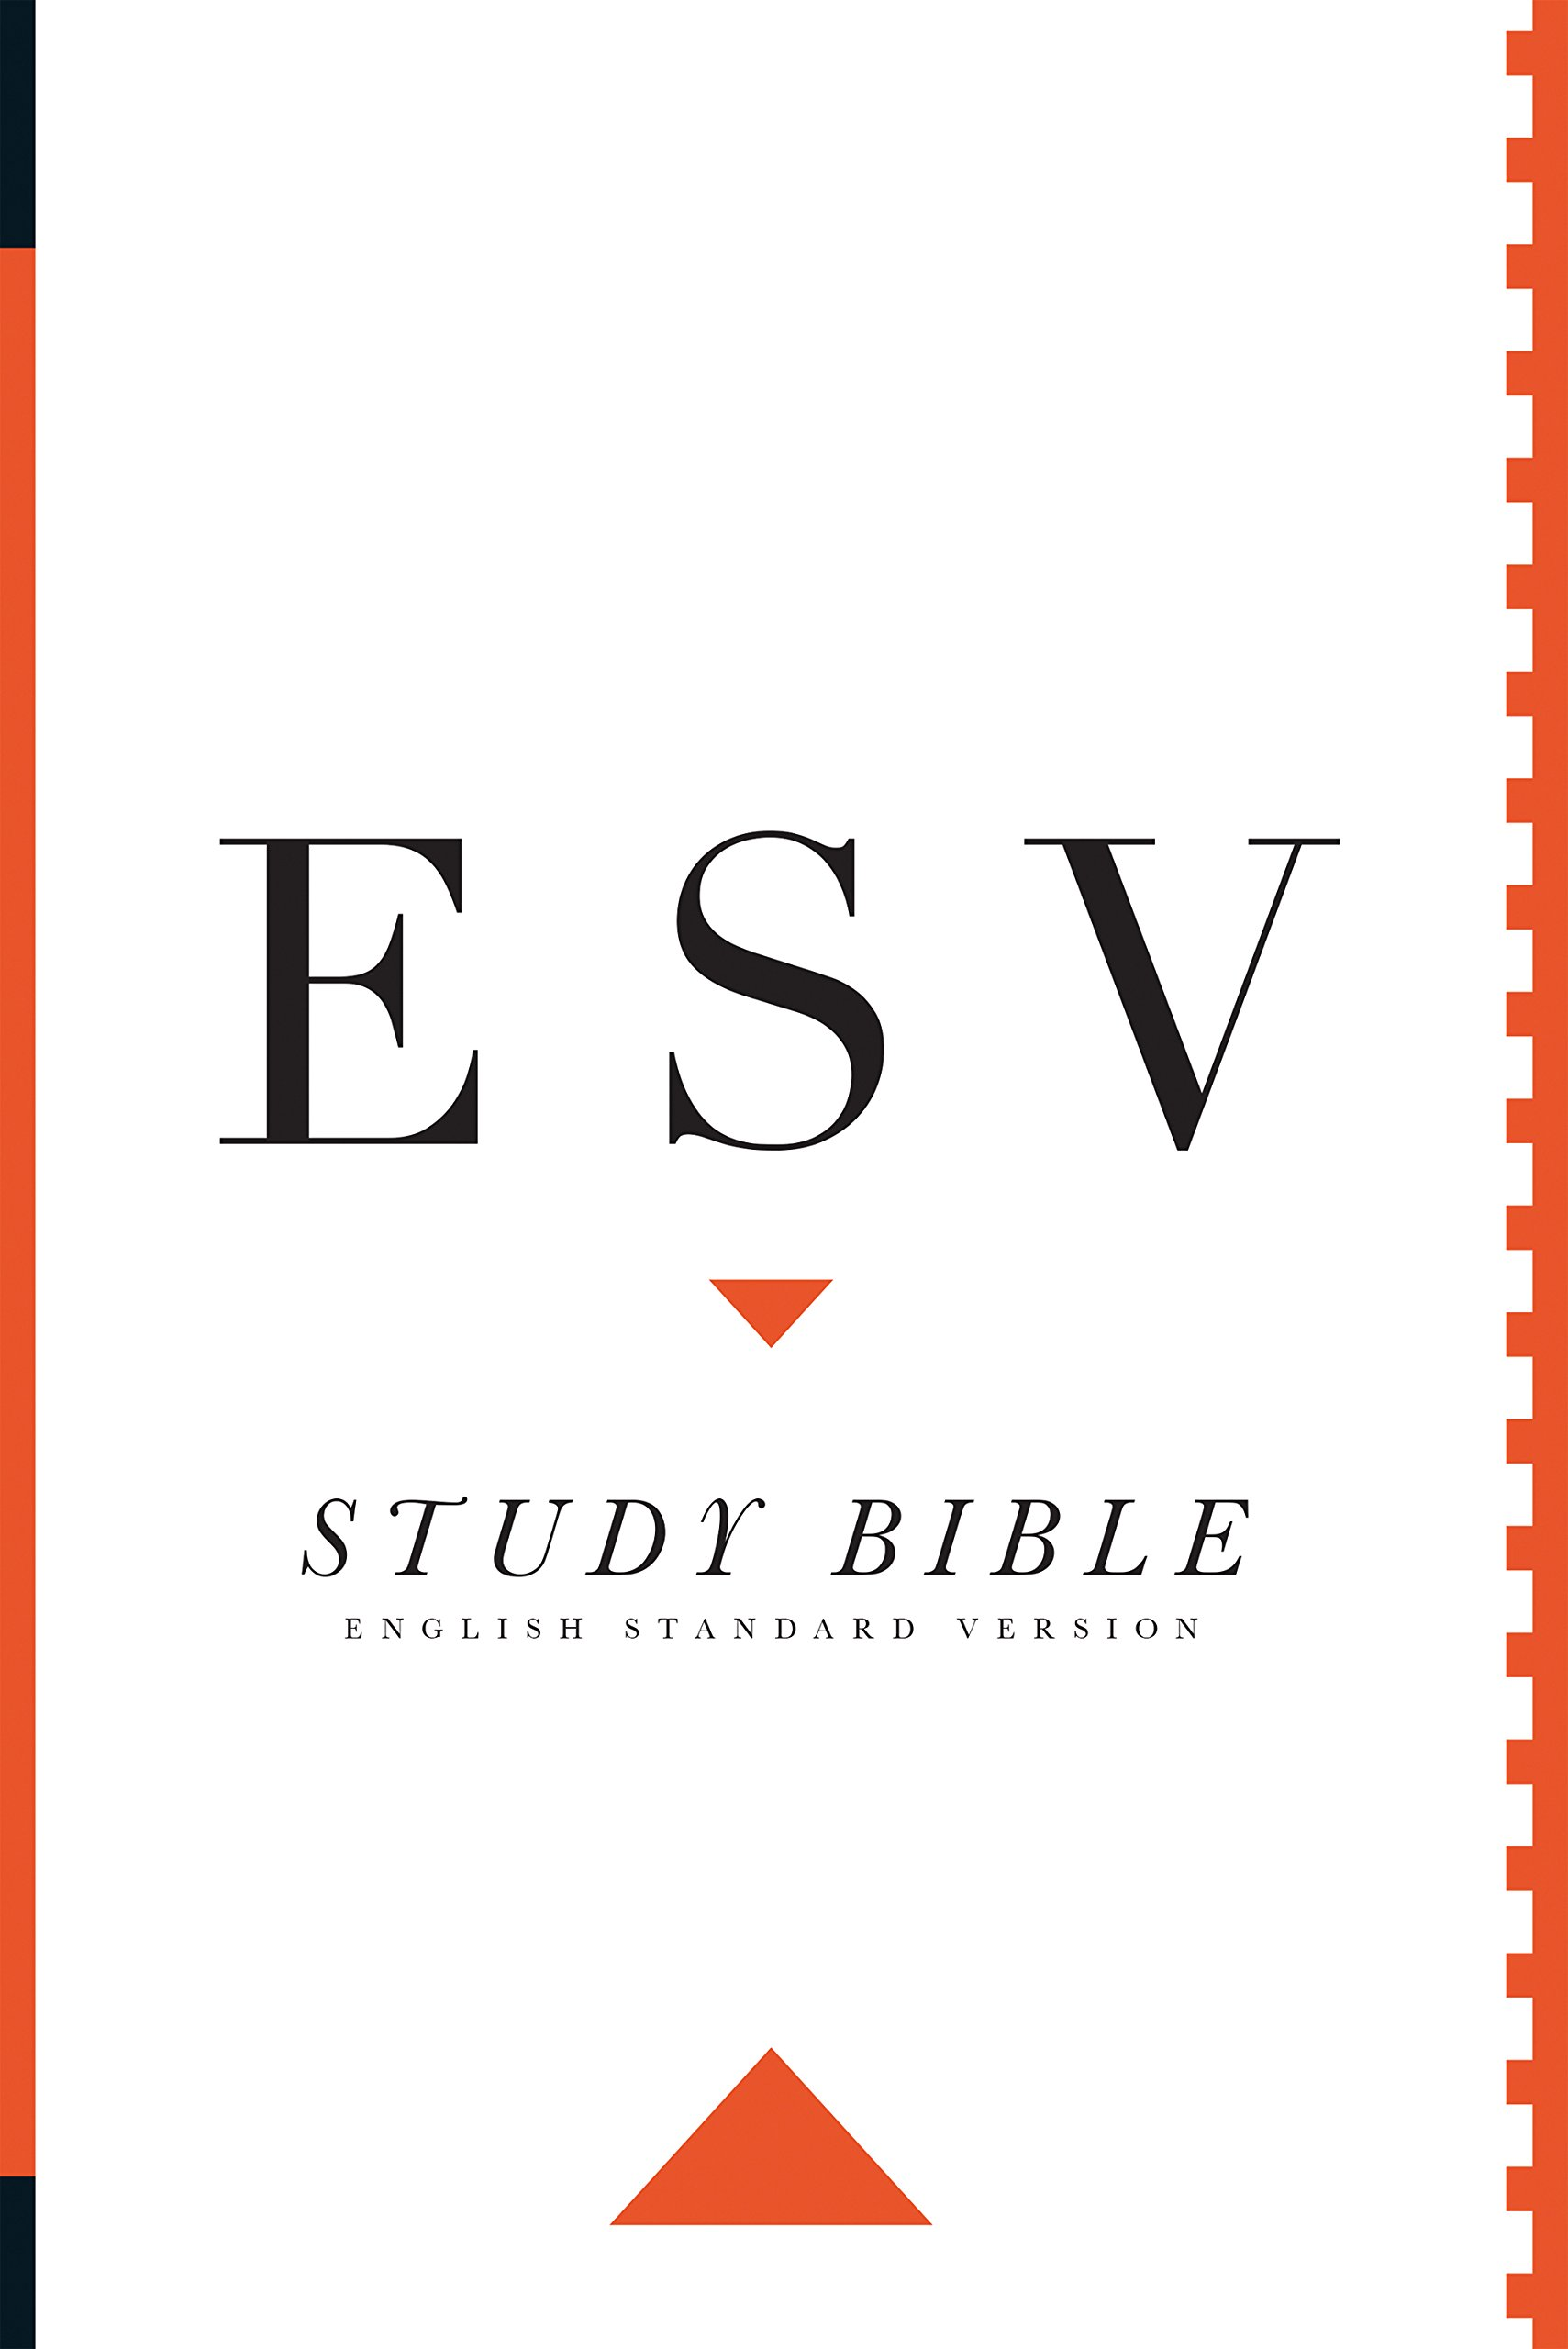 Image result for esv study bible